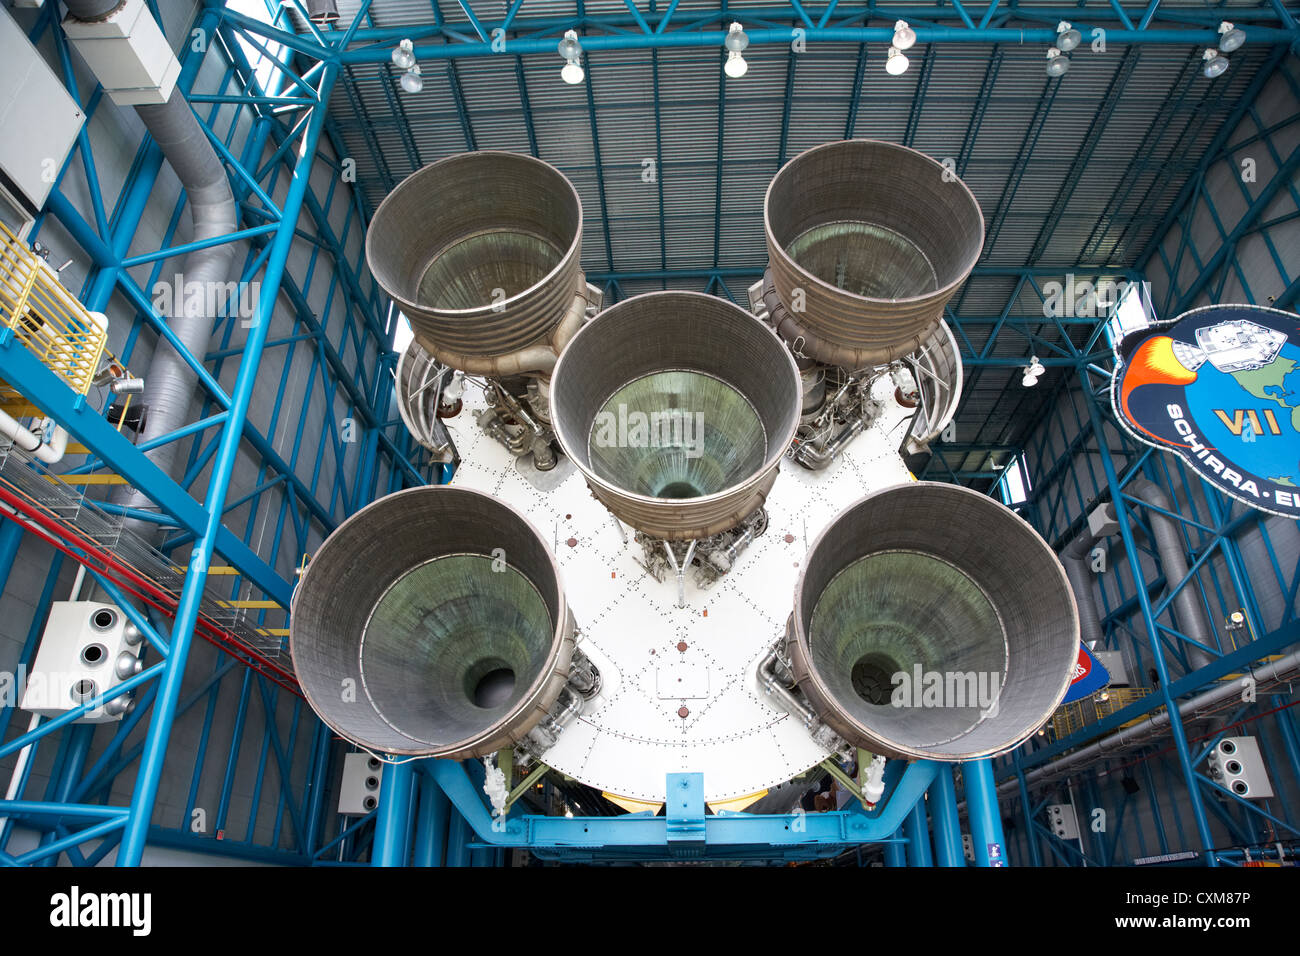 rear view of engines of the saturn five rocket in the apollo saturn v center at Kennedy Space Center Florida USA - Stock Image